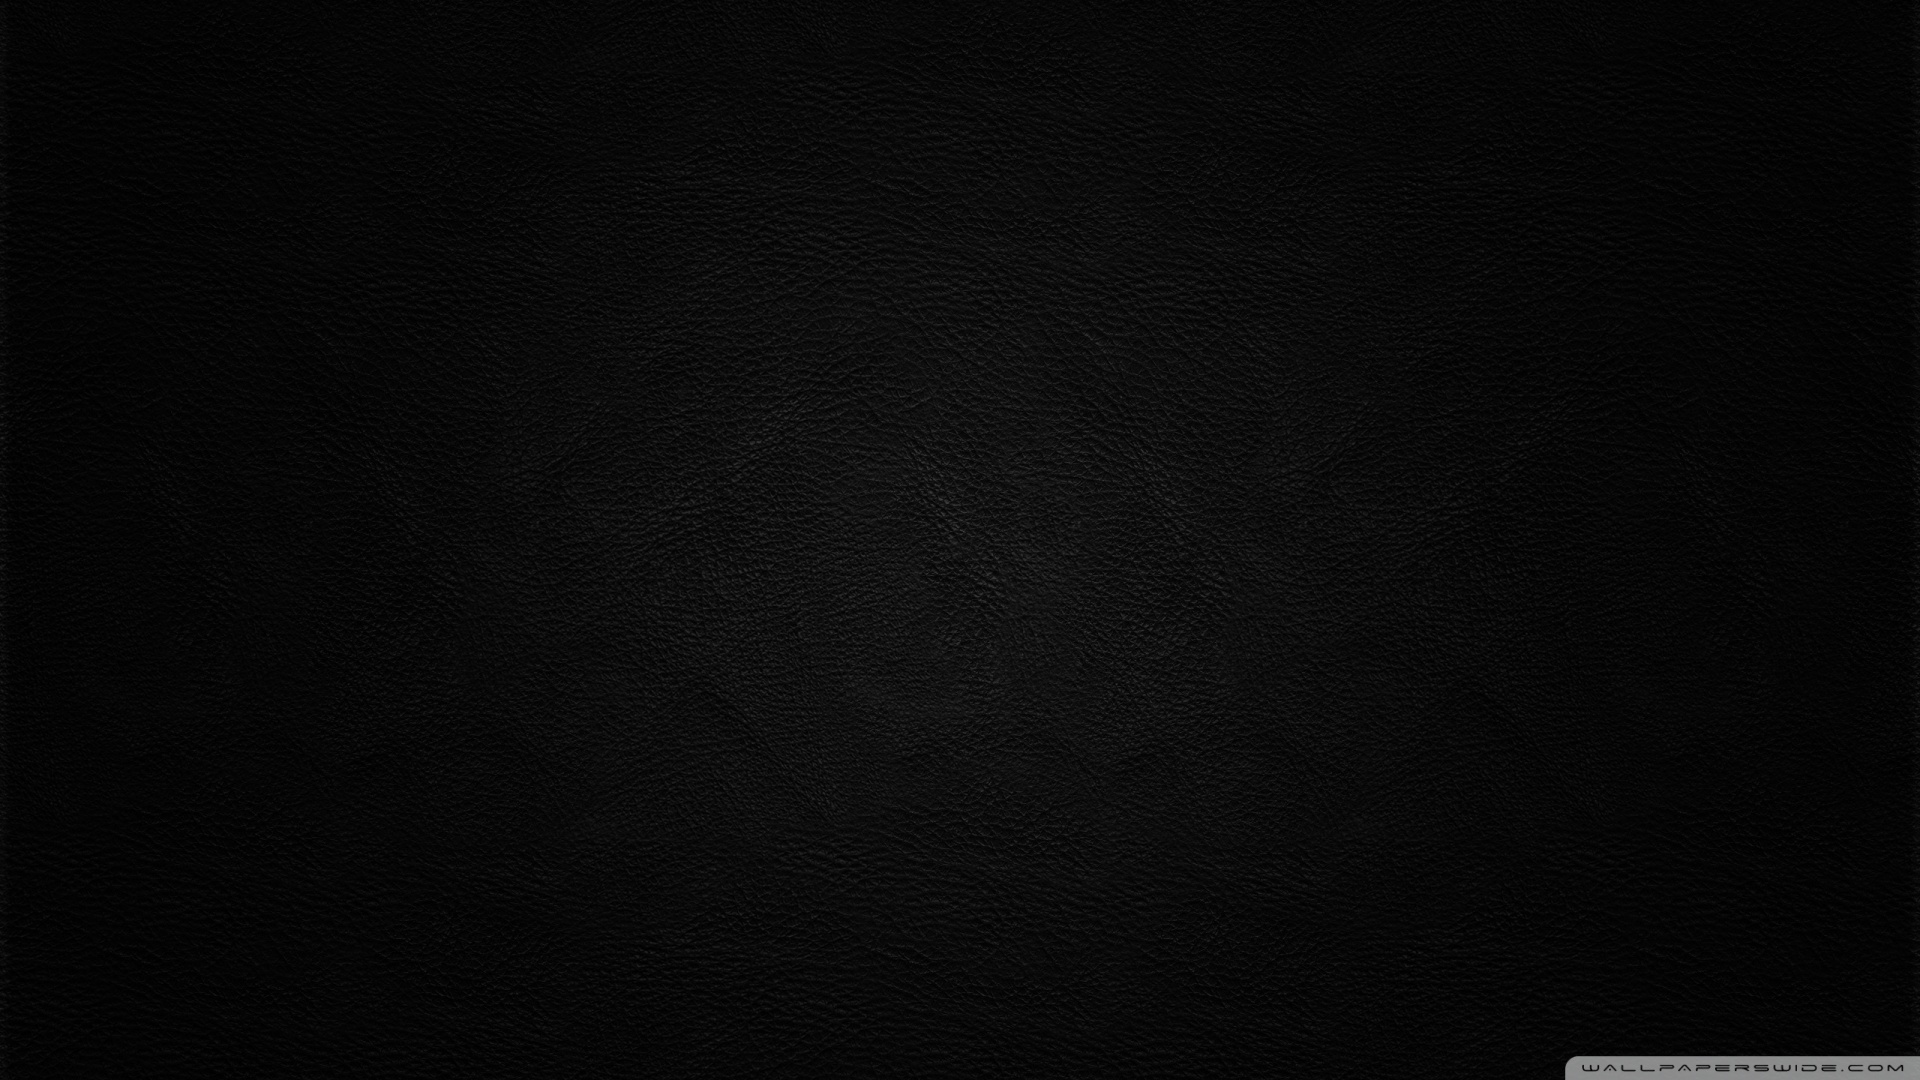 Black Background Leather Wallpaper 1920x1080 Black Background 1920x1080